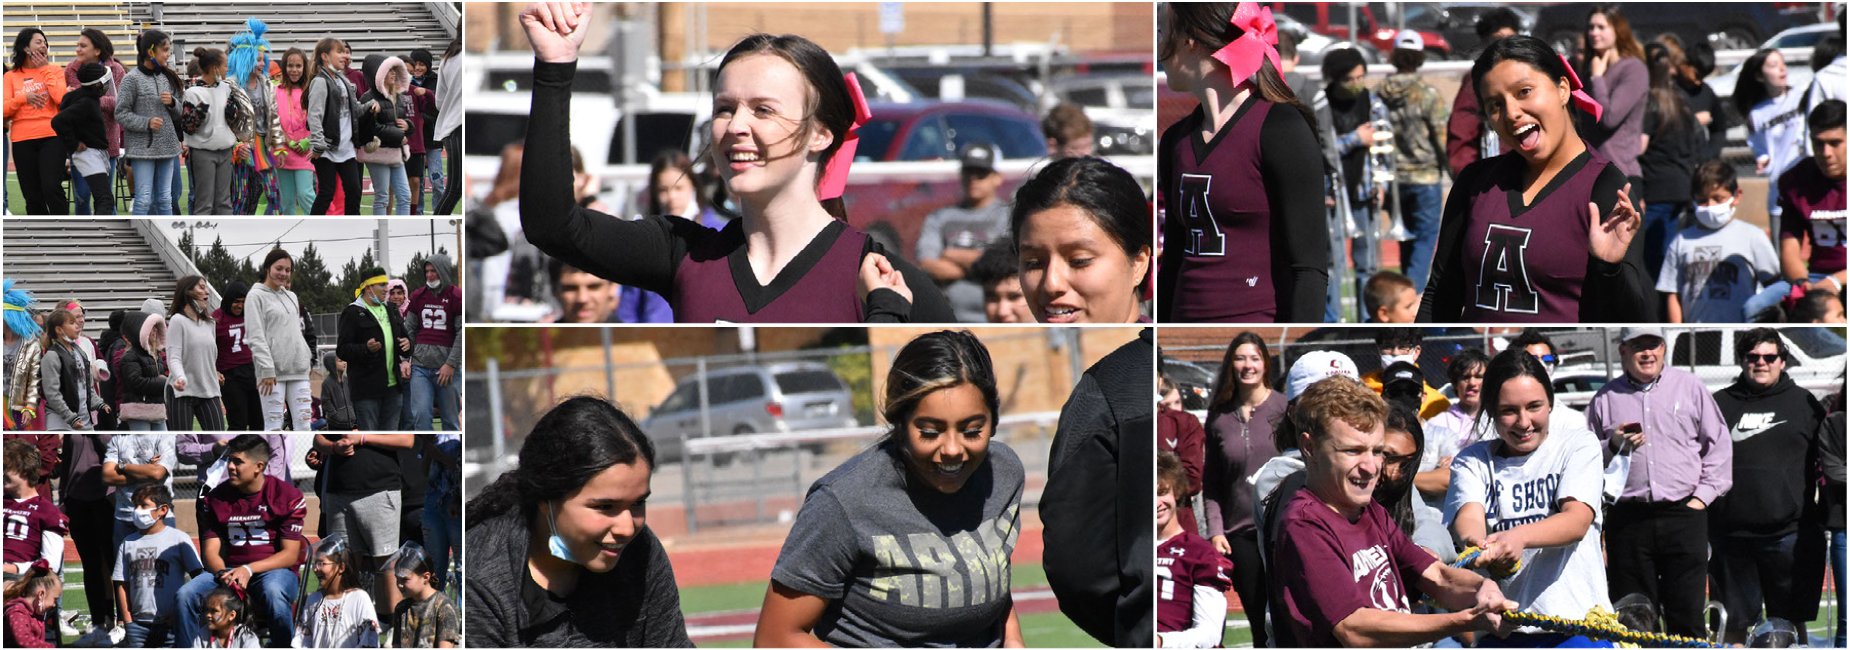 Students participate in pep-rally activities